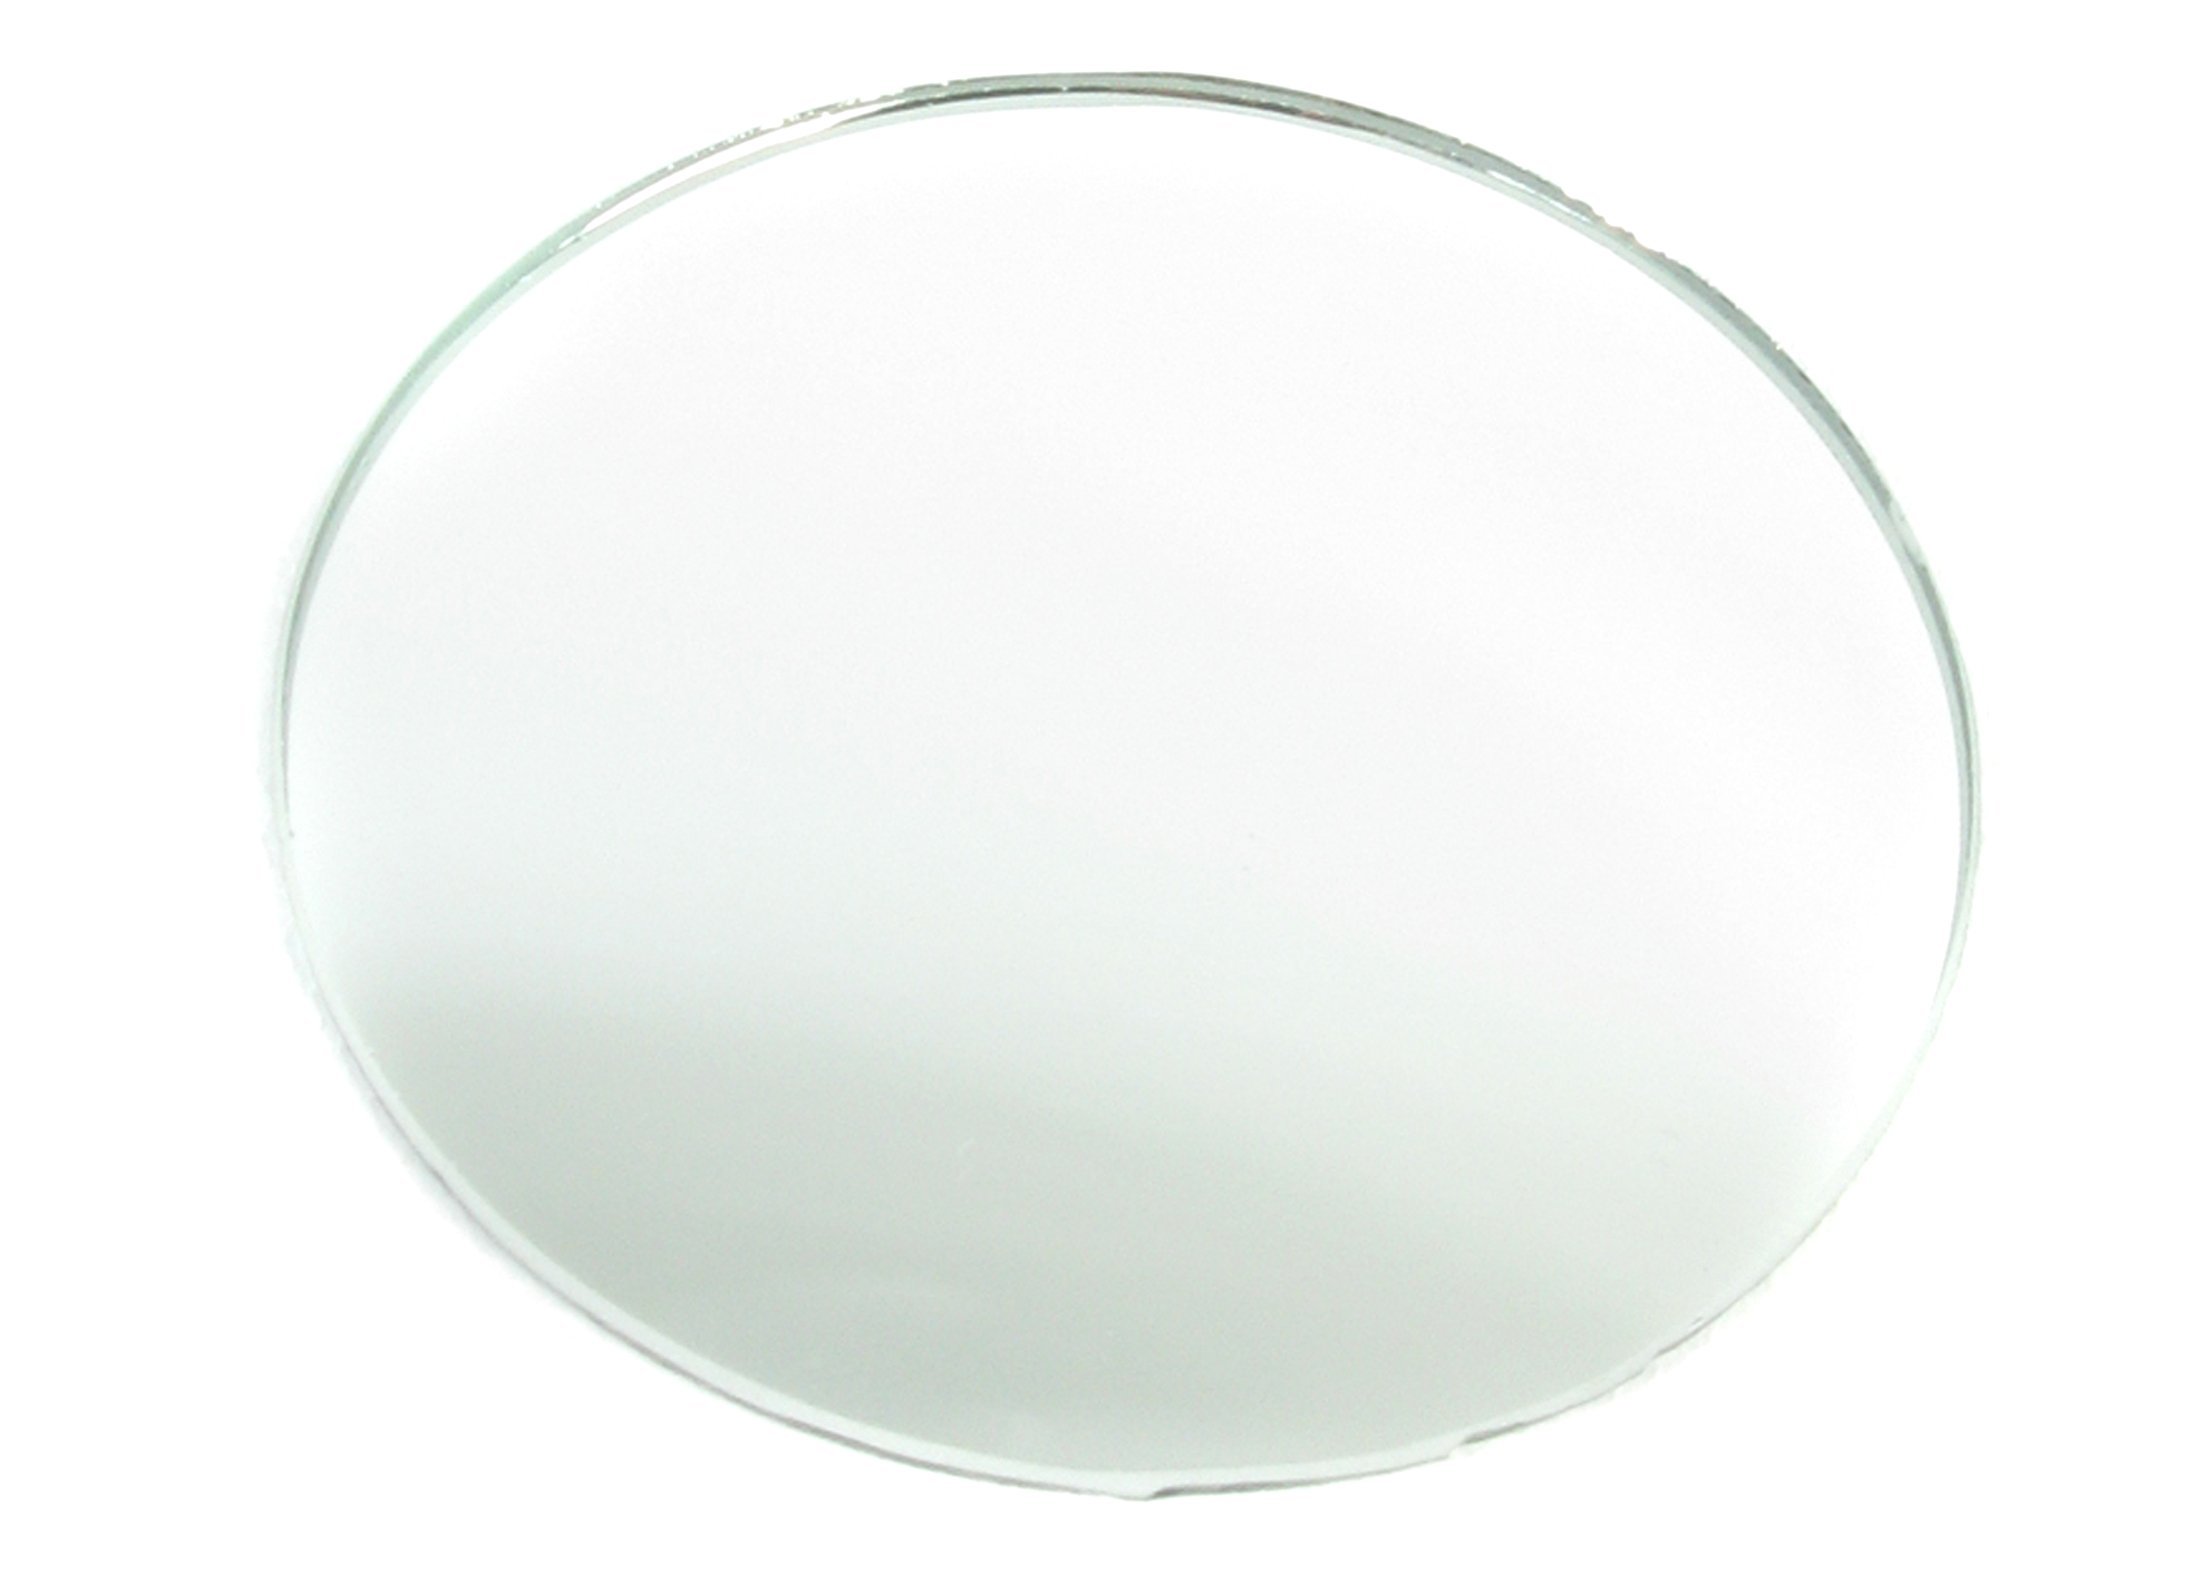 American Educational Concave and Convex Spherical Glass Mirror, 7.5cm Diameter, 25cm Focal Length (Bundle of 5)